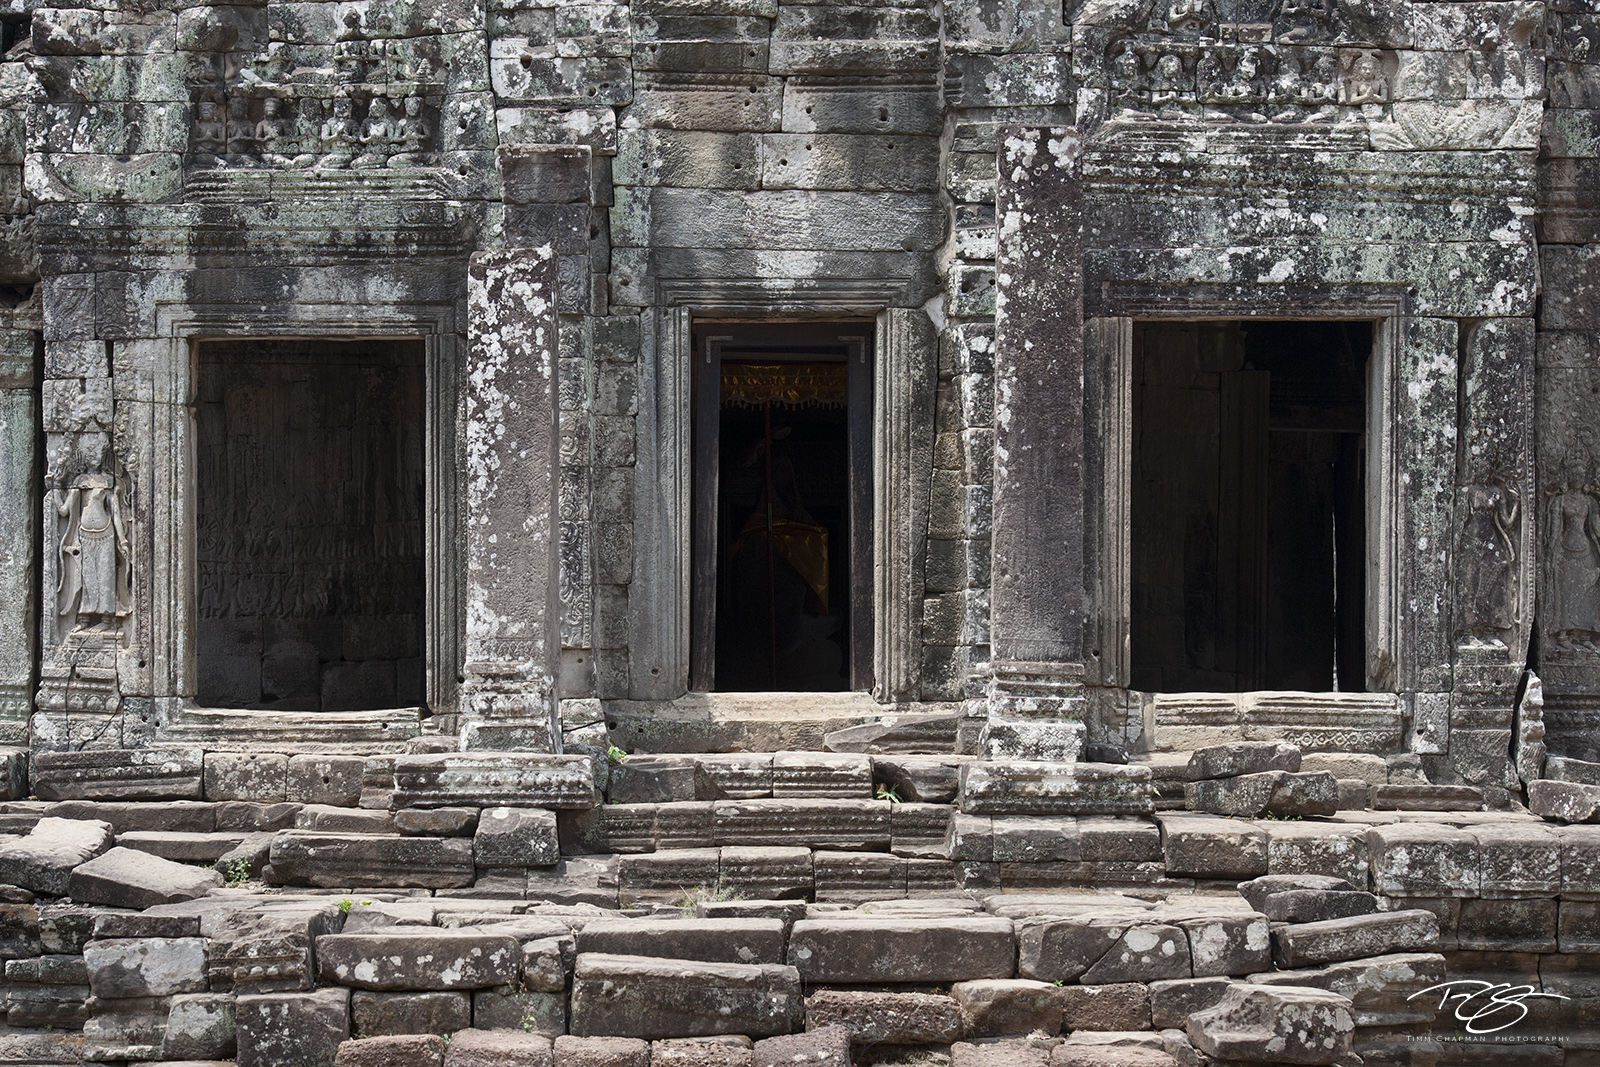 angkor wat, cambodia, temple, bayon, ancient, inner chamber, carving, stone, gallery, chamber, window, light, shadow, sculpture, doorways, doors, door, library, abandoned, forgotten, peace, tranquilit, photo